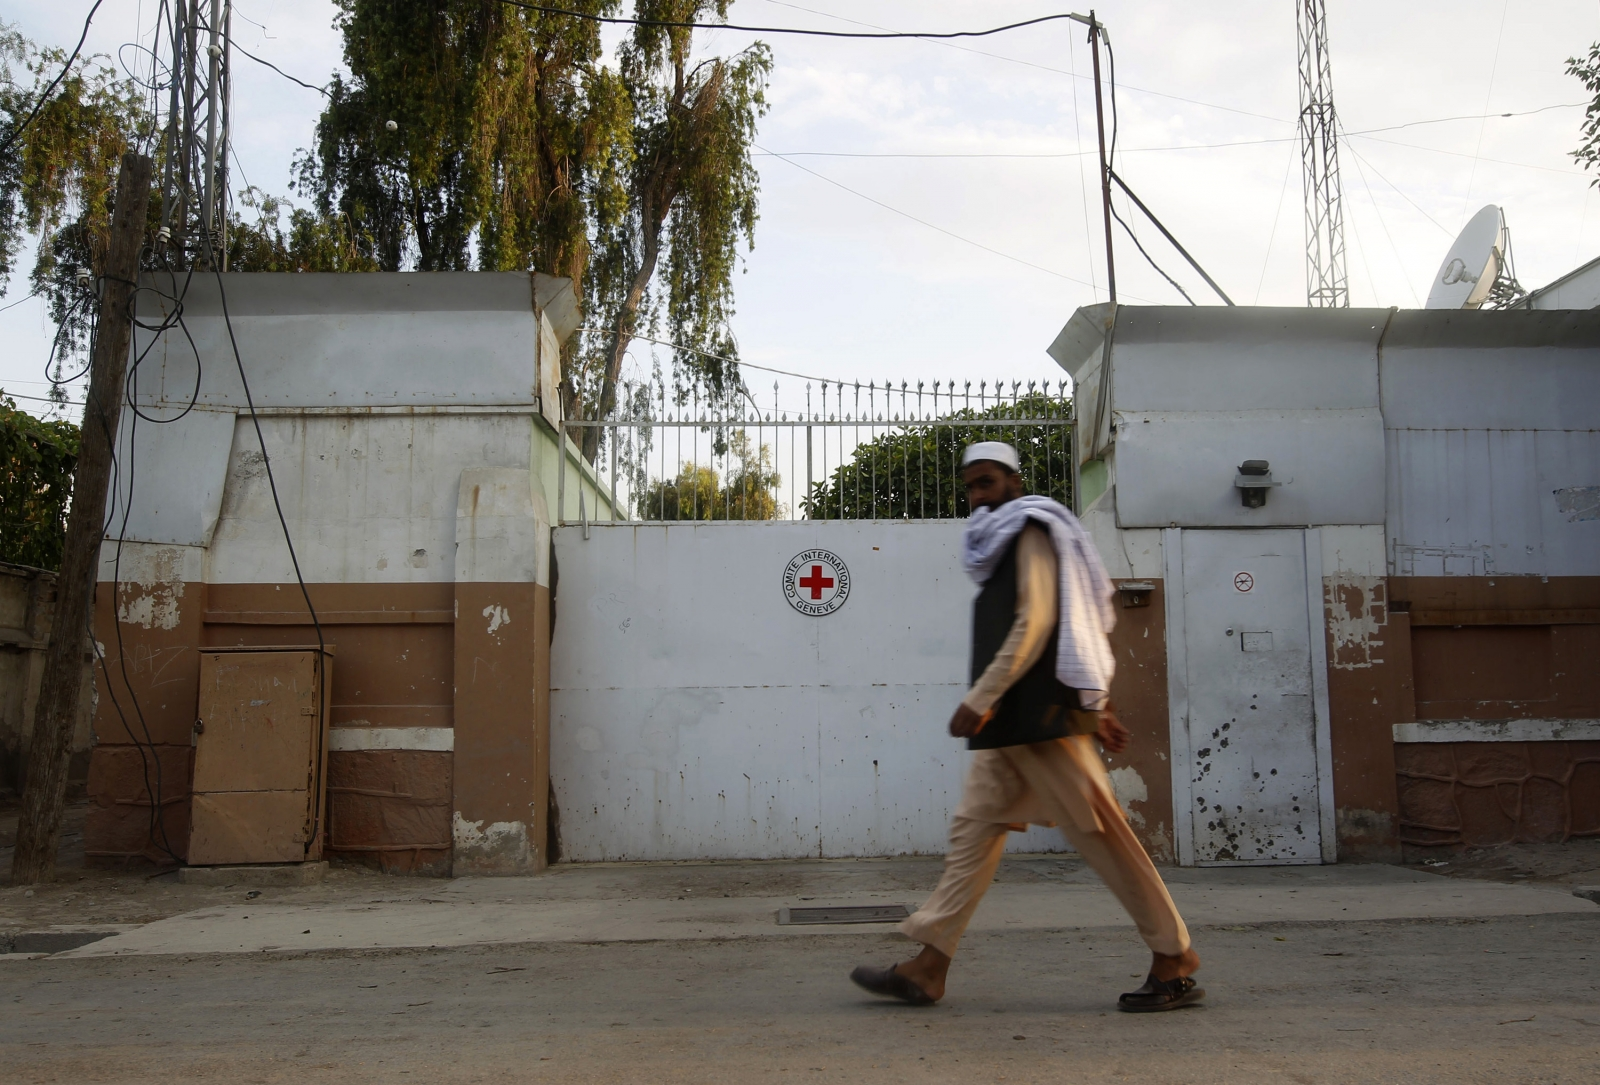 IS militants kill six Red Cross workers in Afghanistan